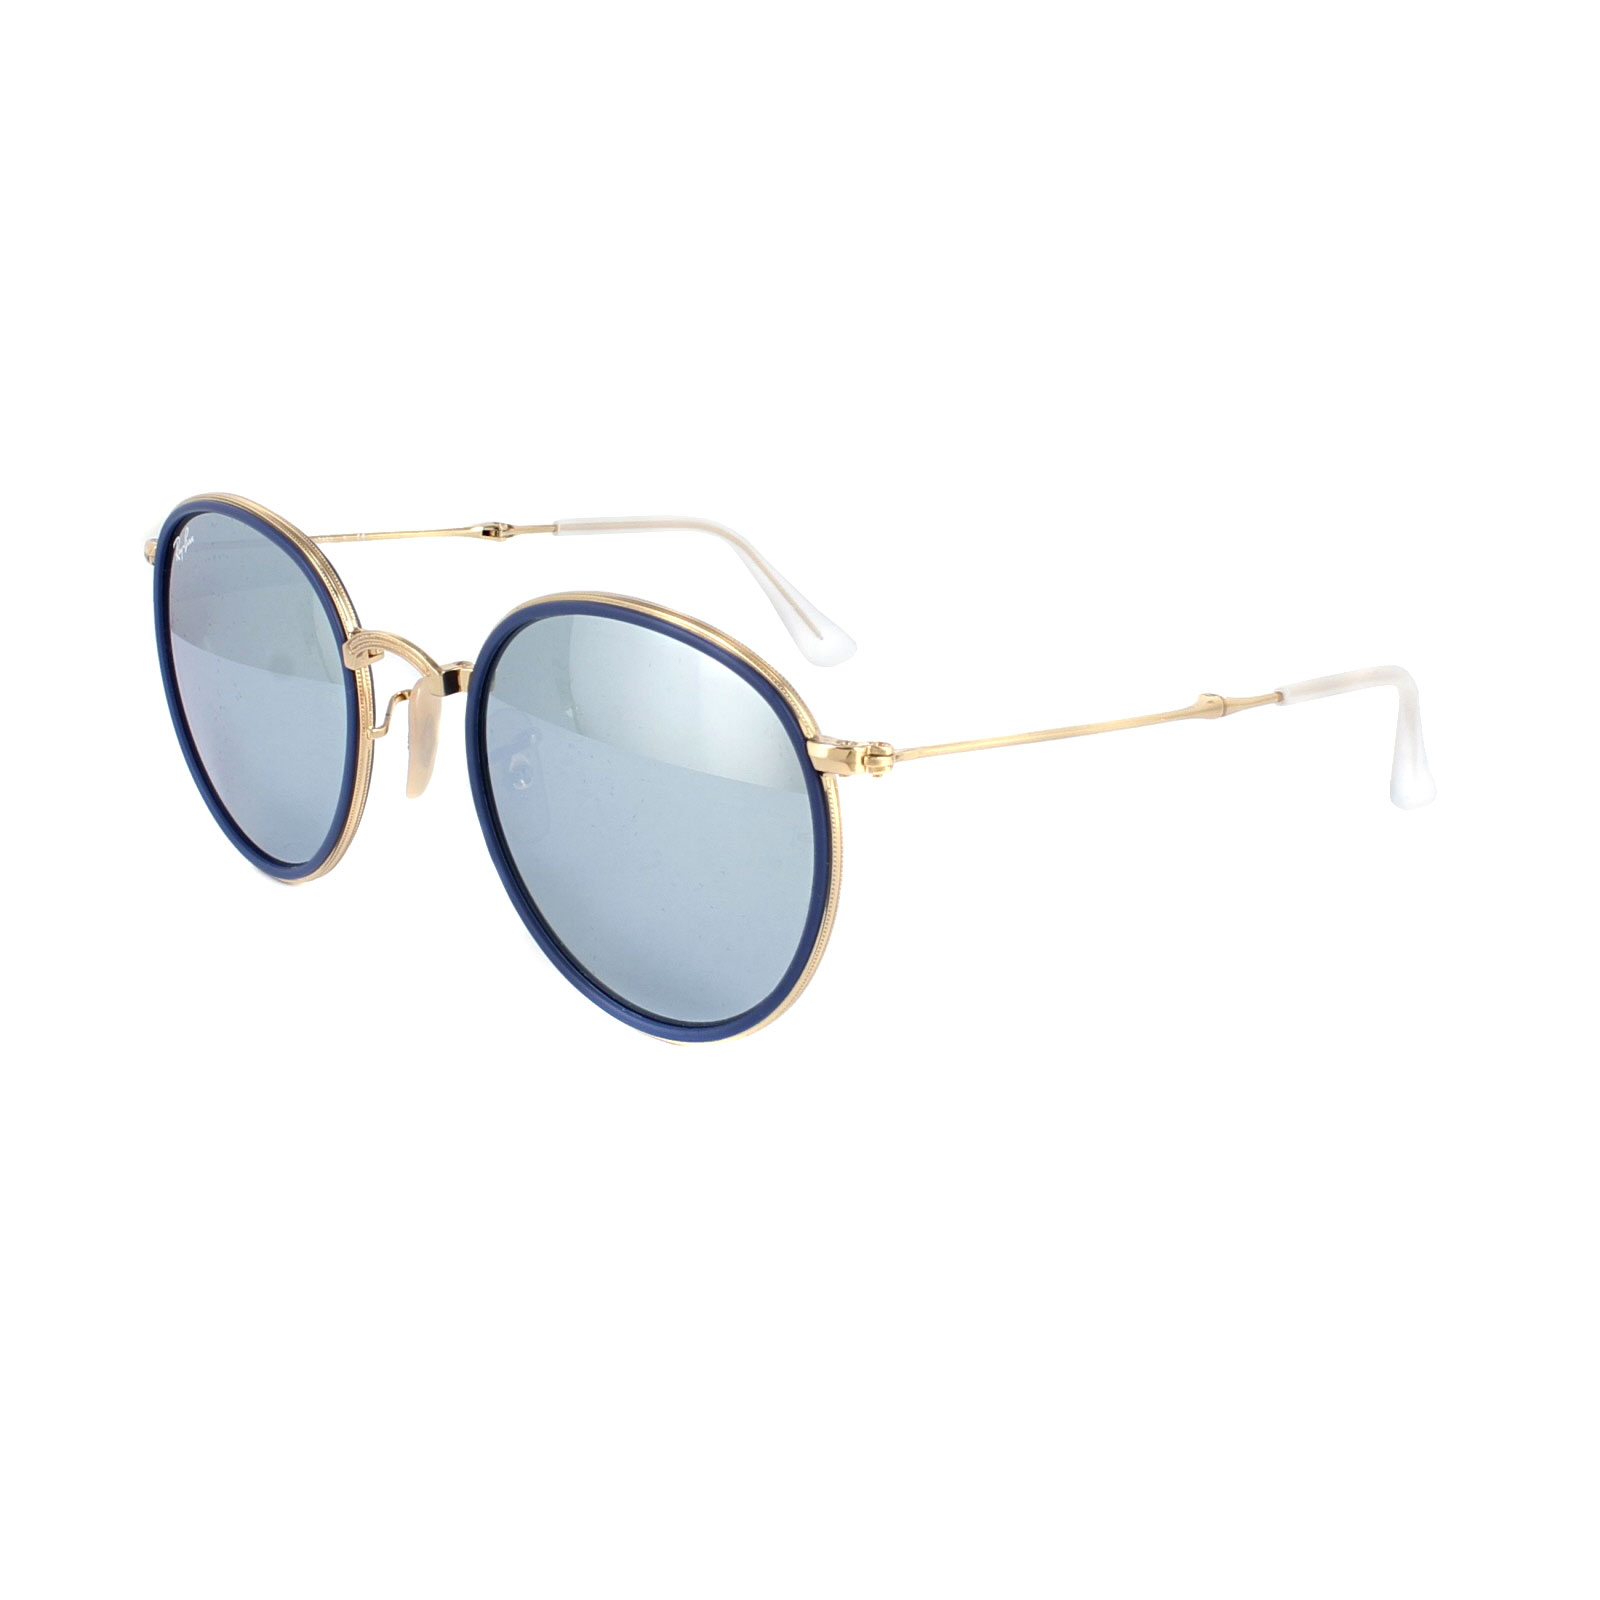 37fc576c0 Sentinel Ray-Ban Sunglasses Round Folding 3517 001/30 Gold Silver Flash  Mirror